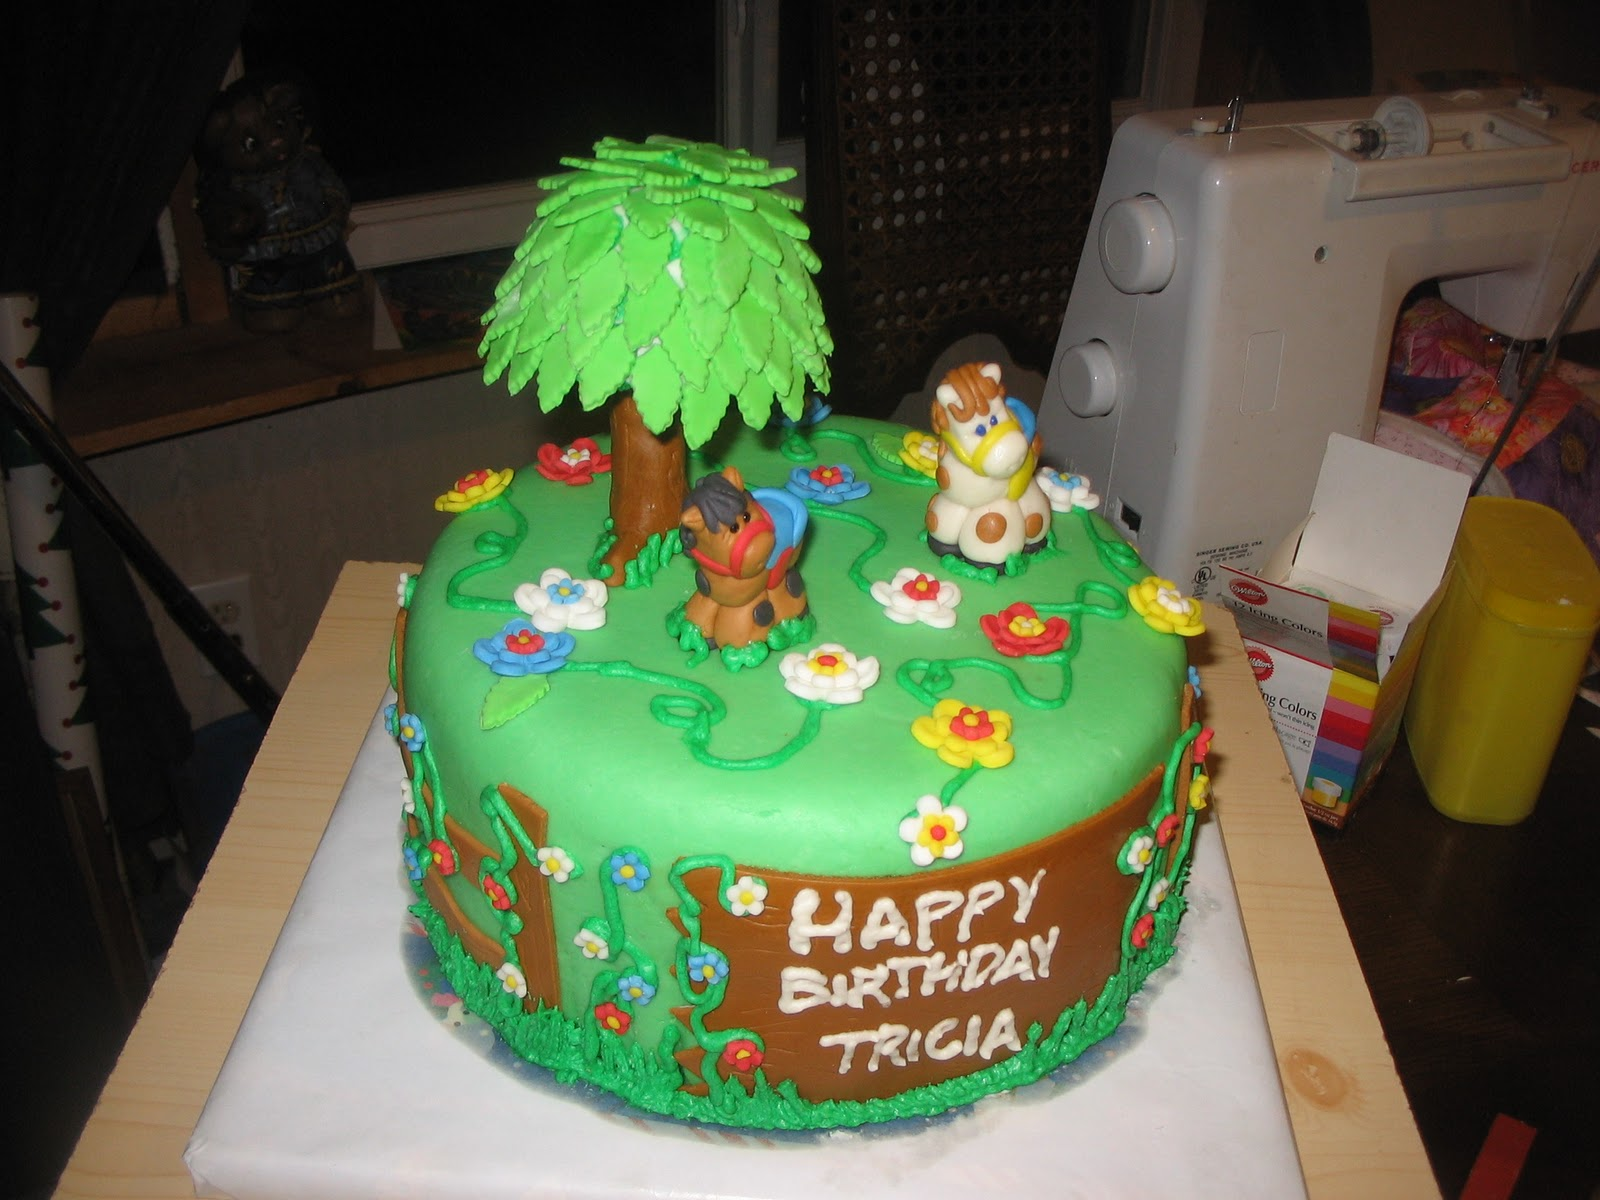 New Latest Cake Images : Latest Cakes: Some of my most recent cakes